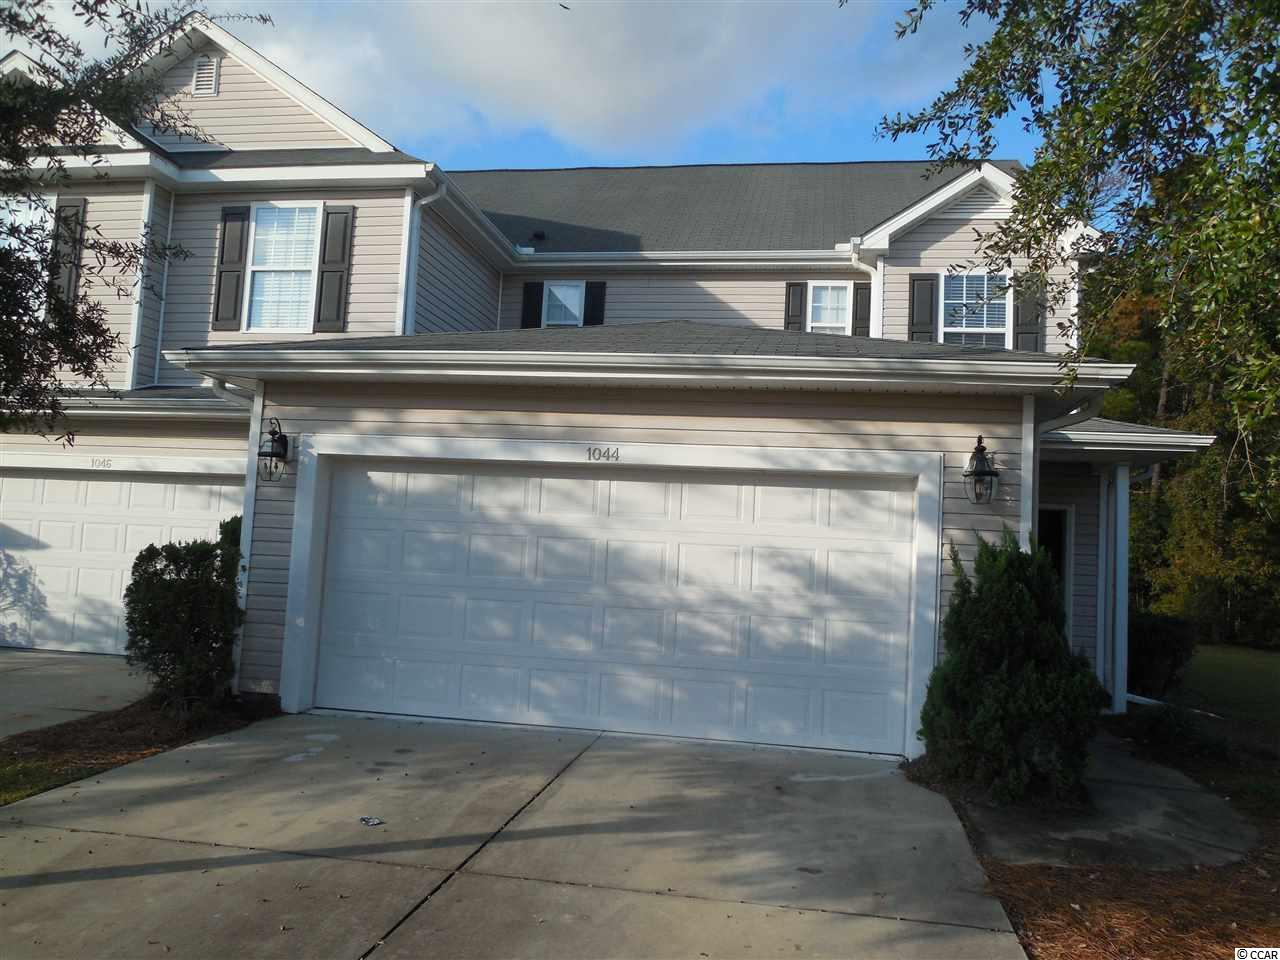 Great end unit townhouse on the largest lot in the Fairways at Wild Wing. Lot 63. It has a beautiful open floor plan with a two story cathedral ceiling in the living room. A first floor owners suite with an extra large walk in closet and en suite master bath with linen closet. There is a half bath off the living room and a sliding glass door for access to the patio. The kitchen has plenty of cabinets a breakfast bar and a pantry. Additional flex room on the second floor with the two other bedrooms a full bath and a good size laundry room with washer and dryer. Home has had brand new carpeting put in most areas. It features an attached private 2 car garage with opener. This town home is a great investment property or a wonderful home for a primary residence or a secondary residence. The Fairways at Wild Wing community is sought after because its close to shopping, restaurants and Coastal Carolina University and just 20 minutes to the beach. It has nightly security, a beautiful pool and lawn maintenance. Cable and internet are also included in the HOA. All measurements are approximate and not guaranteed. Buyer is responsible for verification.